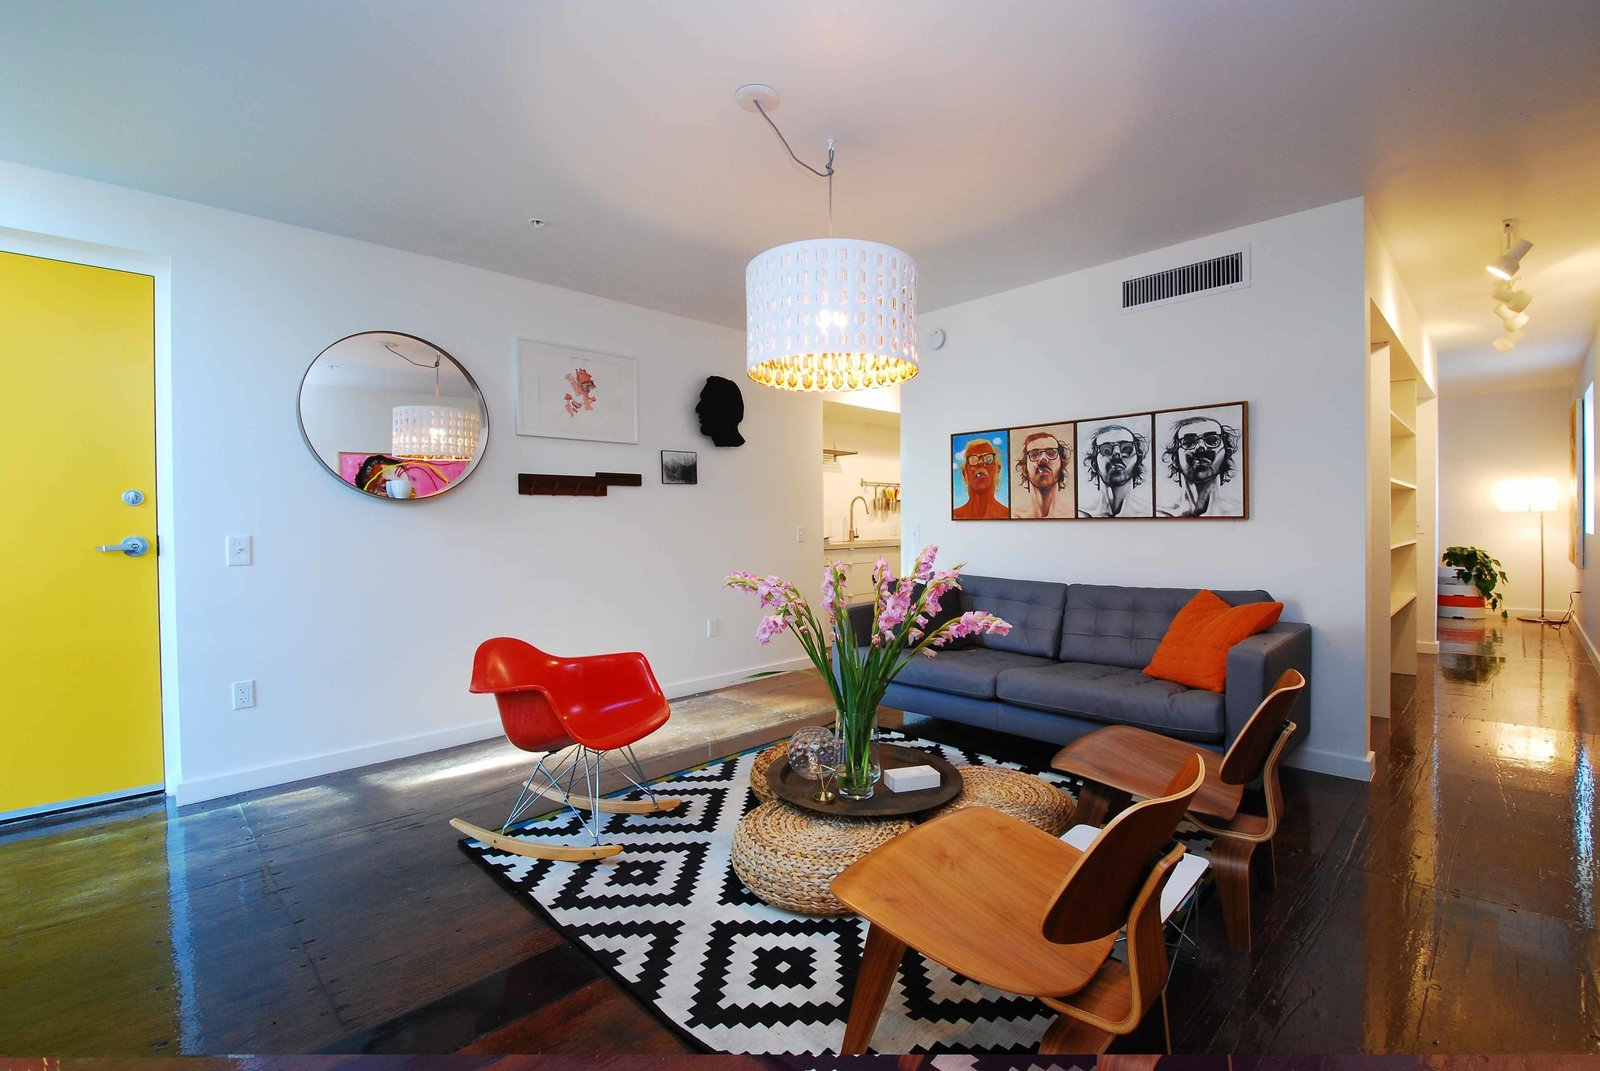 Living Room, Dark Hardwood Floor, Chair, Pendant Lighting, Coffee Tables, Ottomans, Track Lighting, and Sofa The lone furnished unit, which is slated to be an Airbnb rental, features a RAR rocker and two LCW chairs by Charles and Ray Eames.  Shipping Containers by Dwell